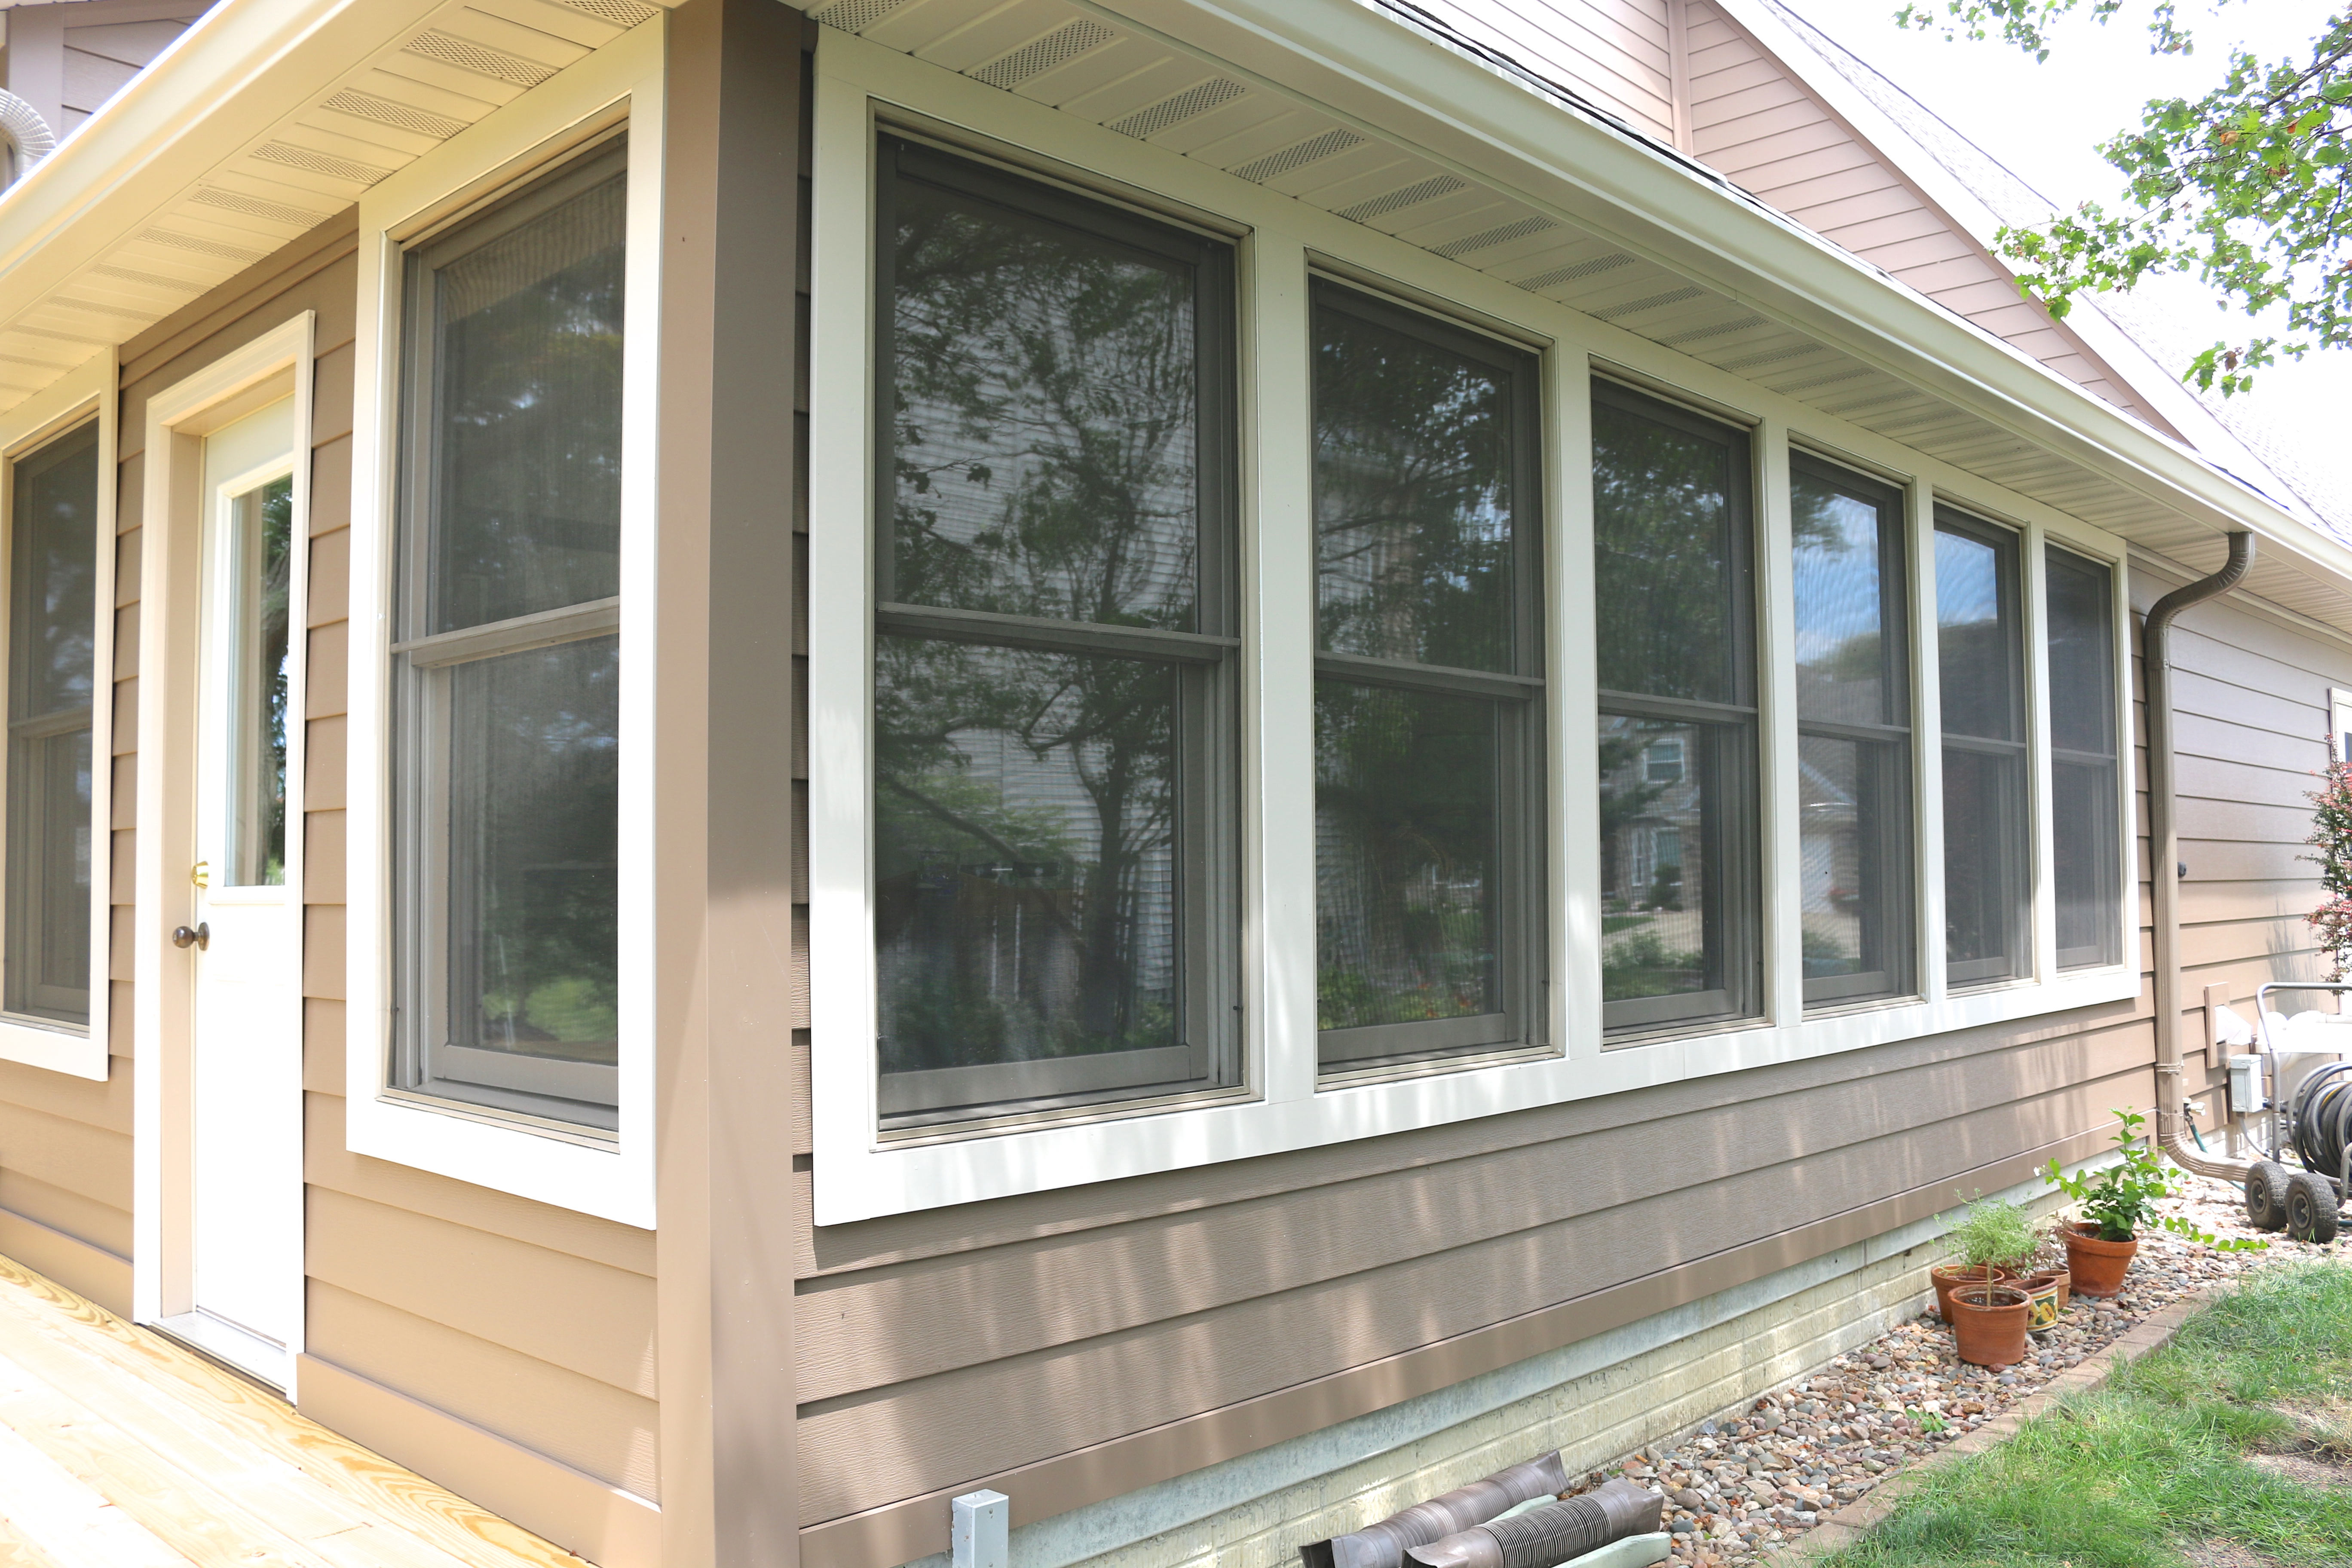 Royal celect window casings in willow off white or cream - Brown house with white trim ...